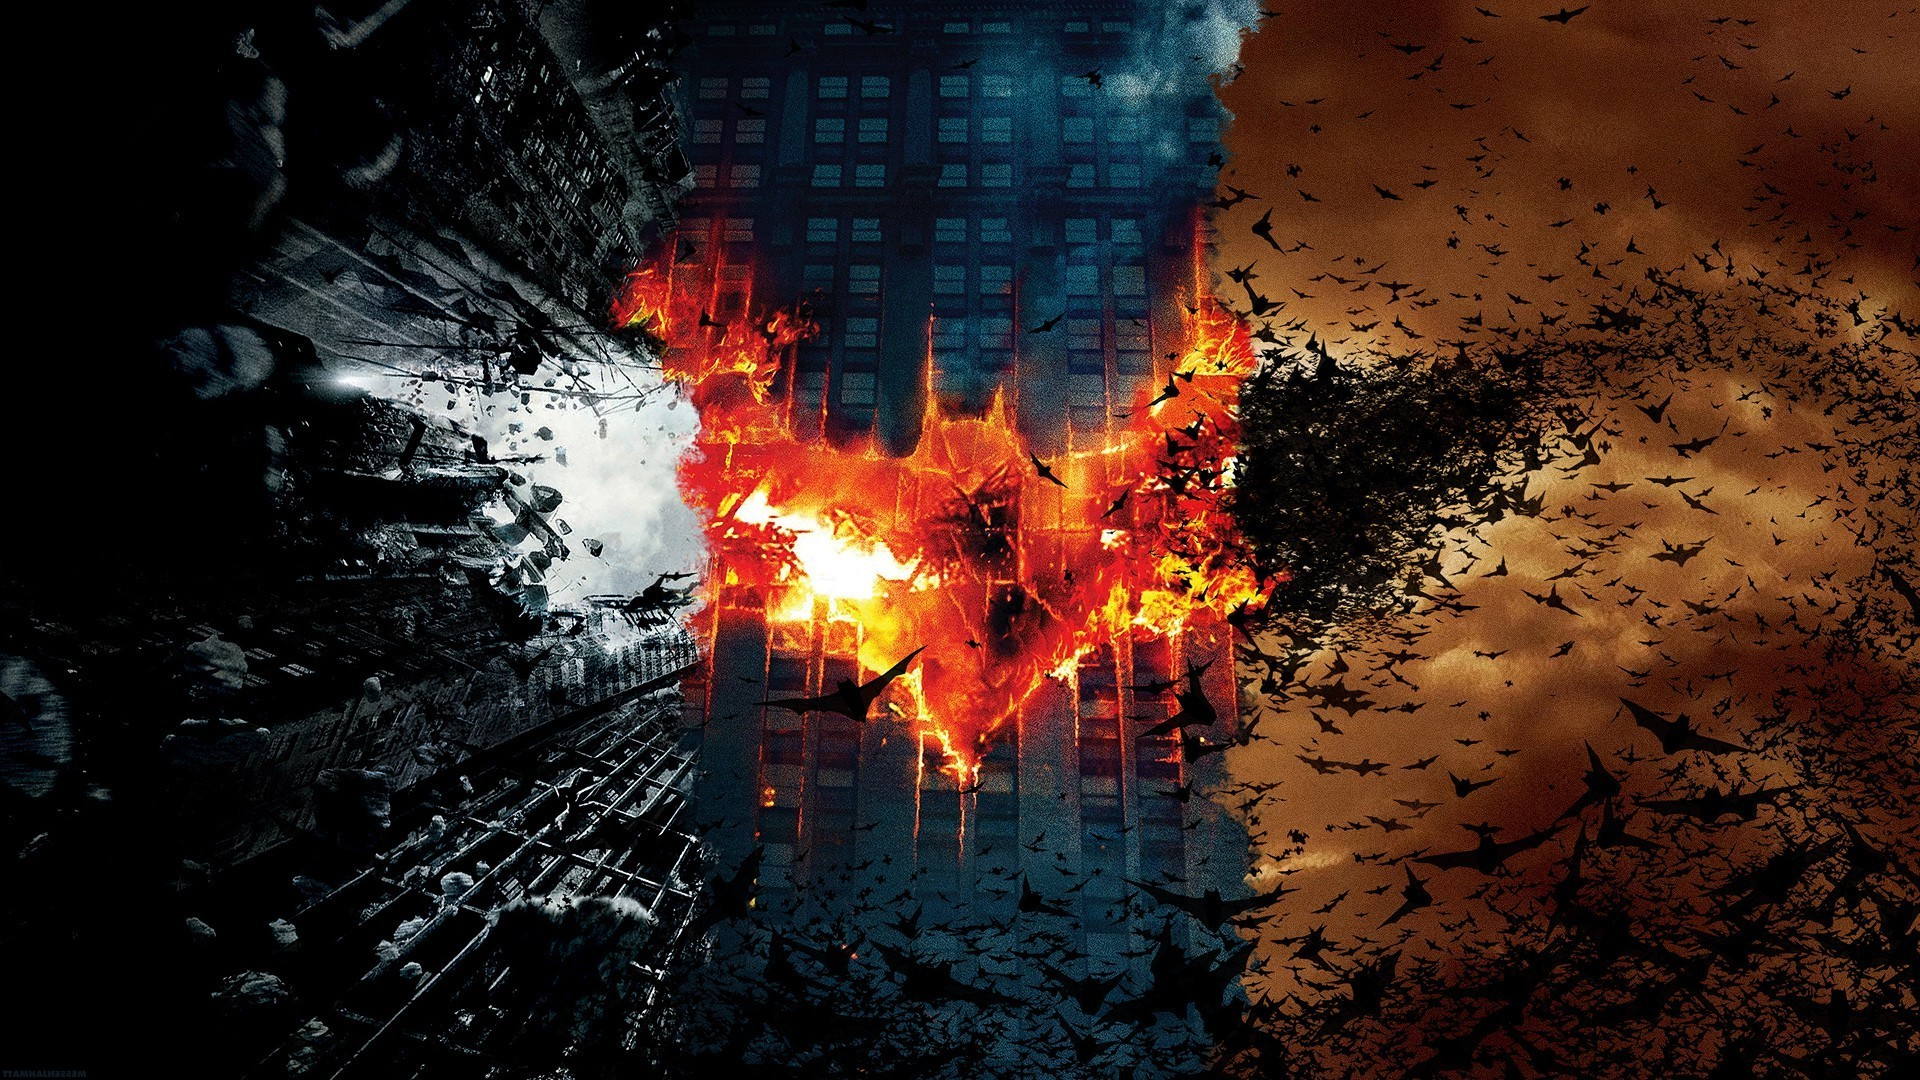 Dark Knight Falls Wallpaper Wallpaper 1920x1080 Px Batman Begins Movies The Dark